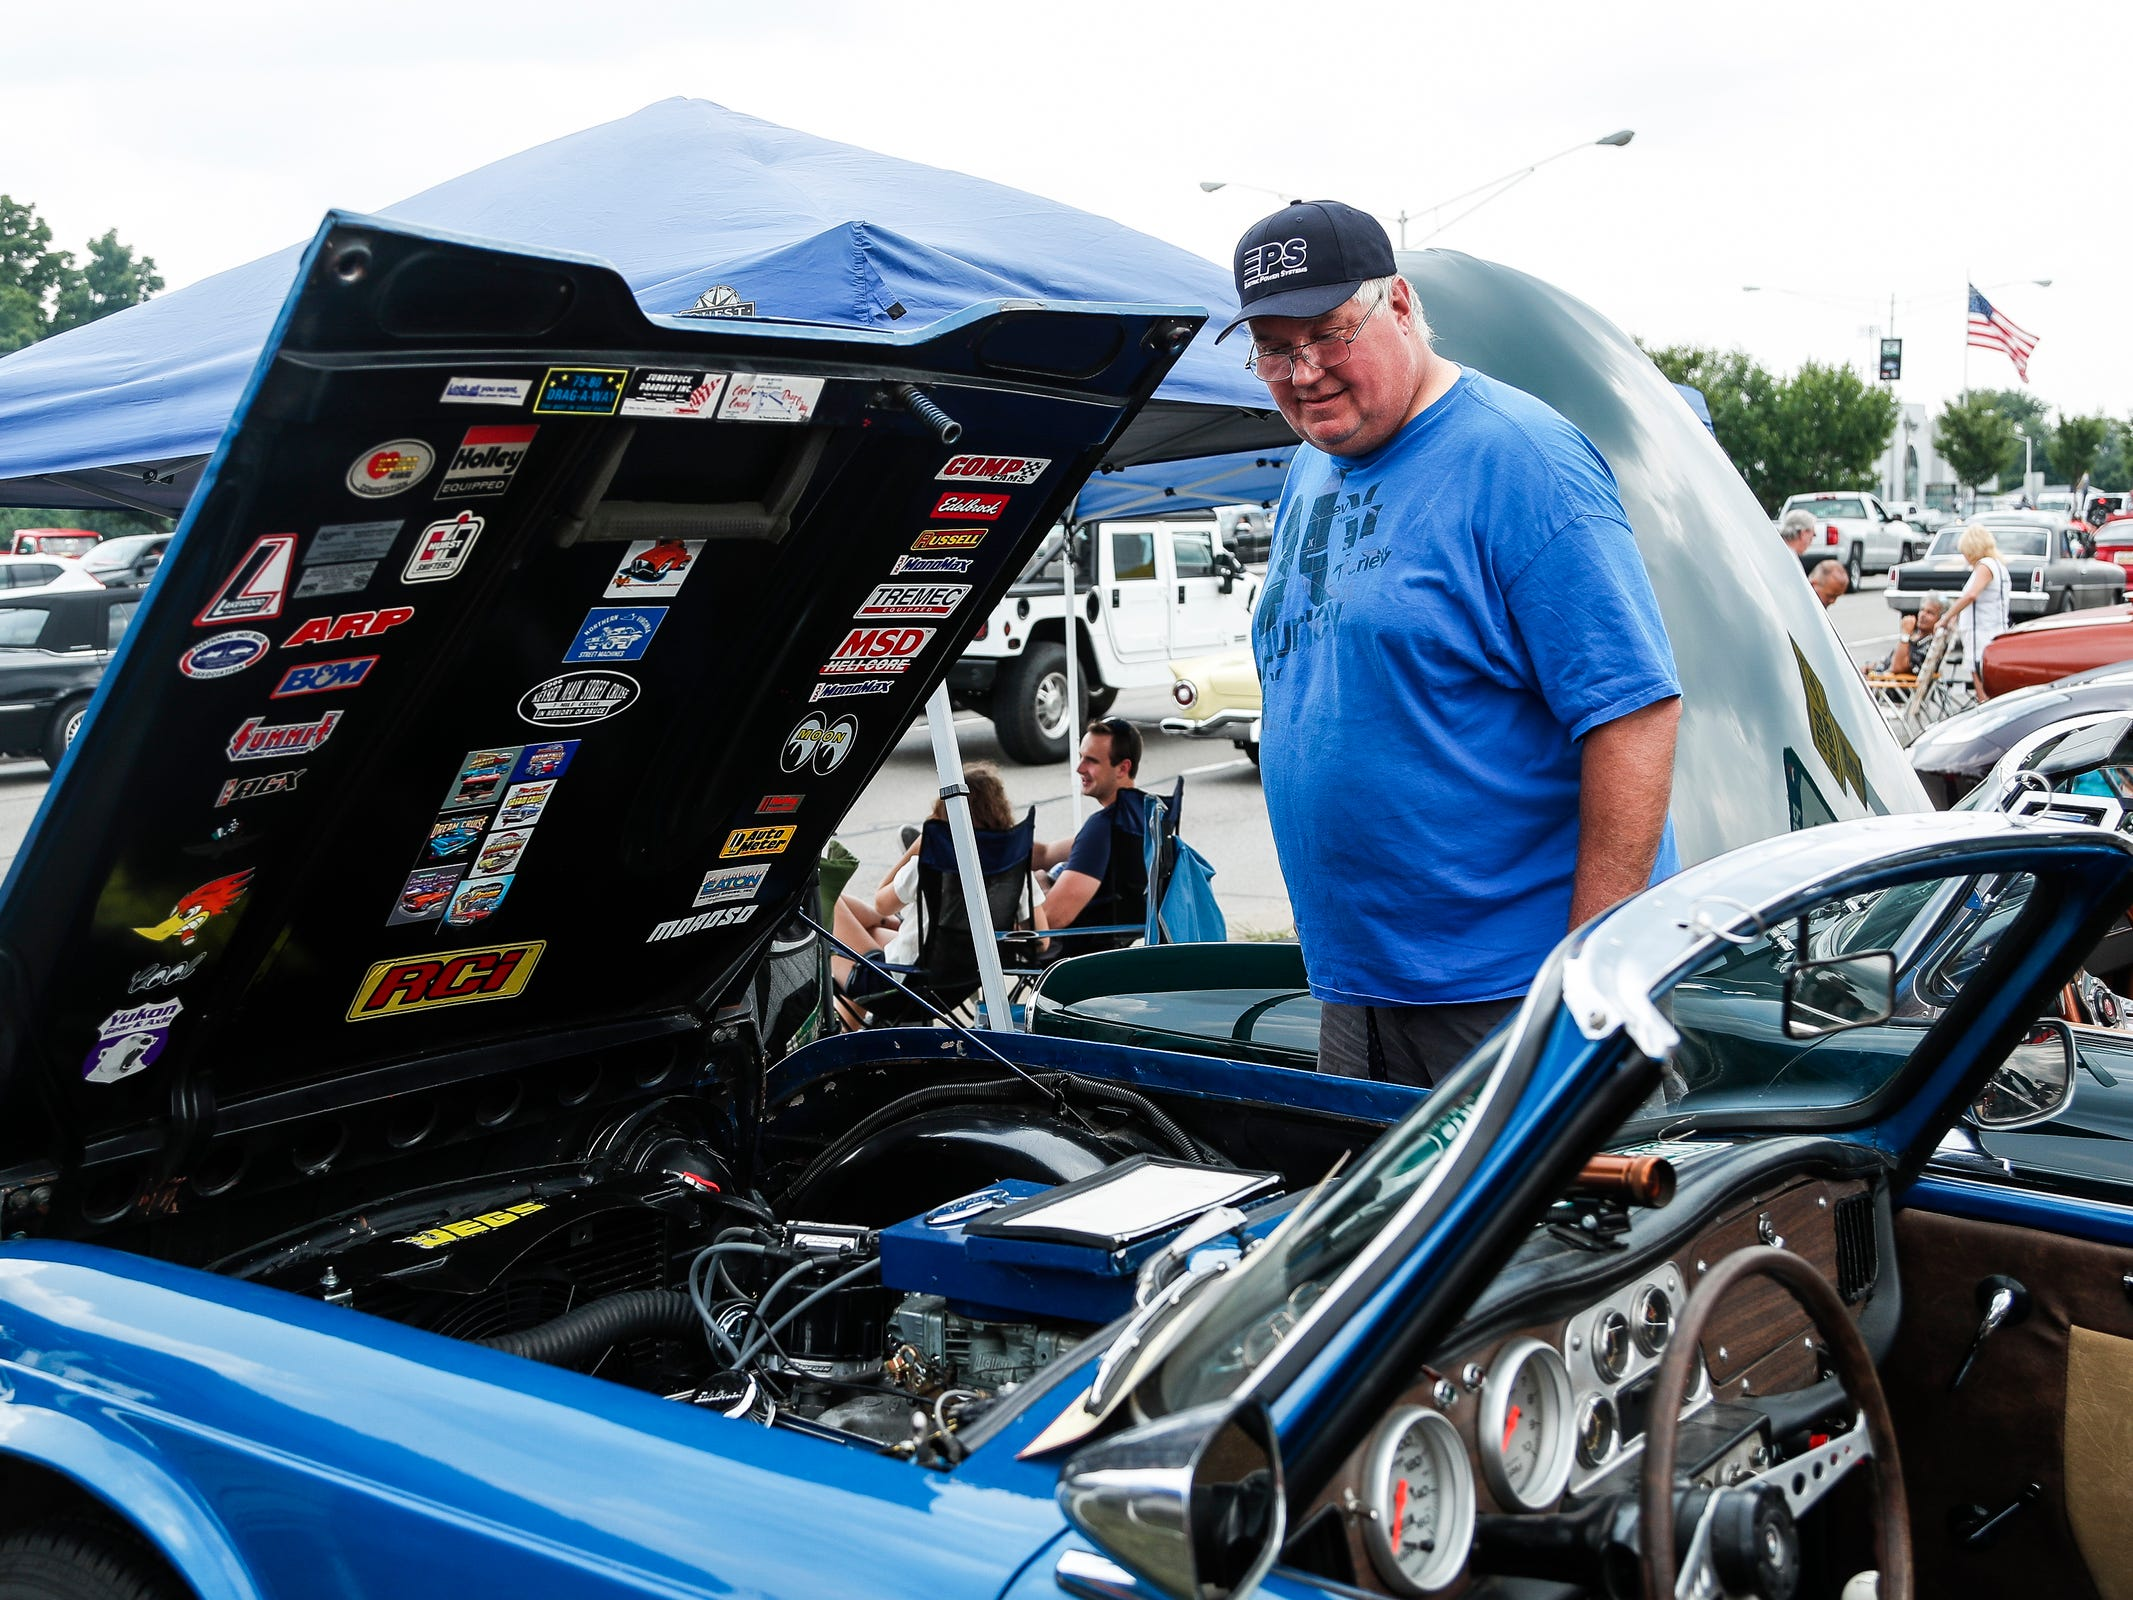 Gary Hudson of Harrison looks at the engine bay of a 1962 Triumph TR-4 along Woodward Avenue in Royal Oak during the Woodward Dream Cruise, Saturday, August 18, 2018.